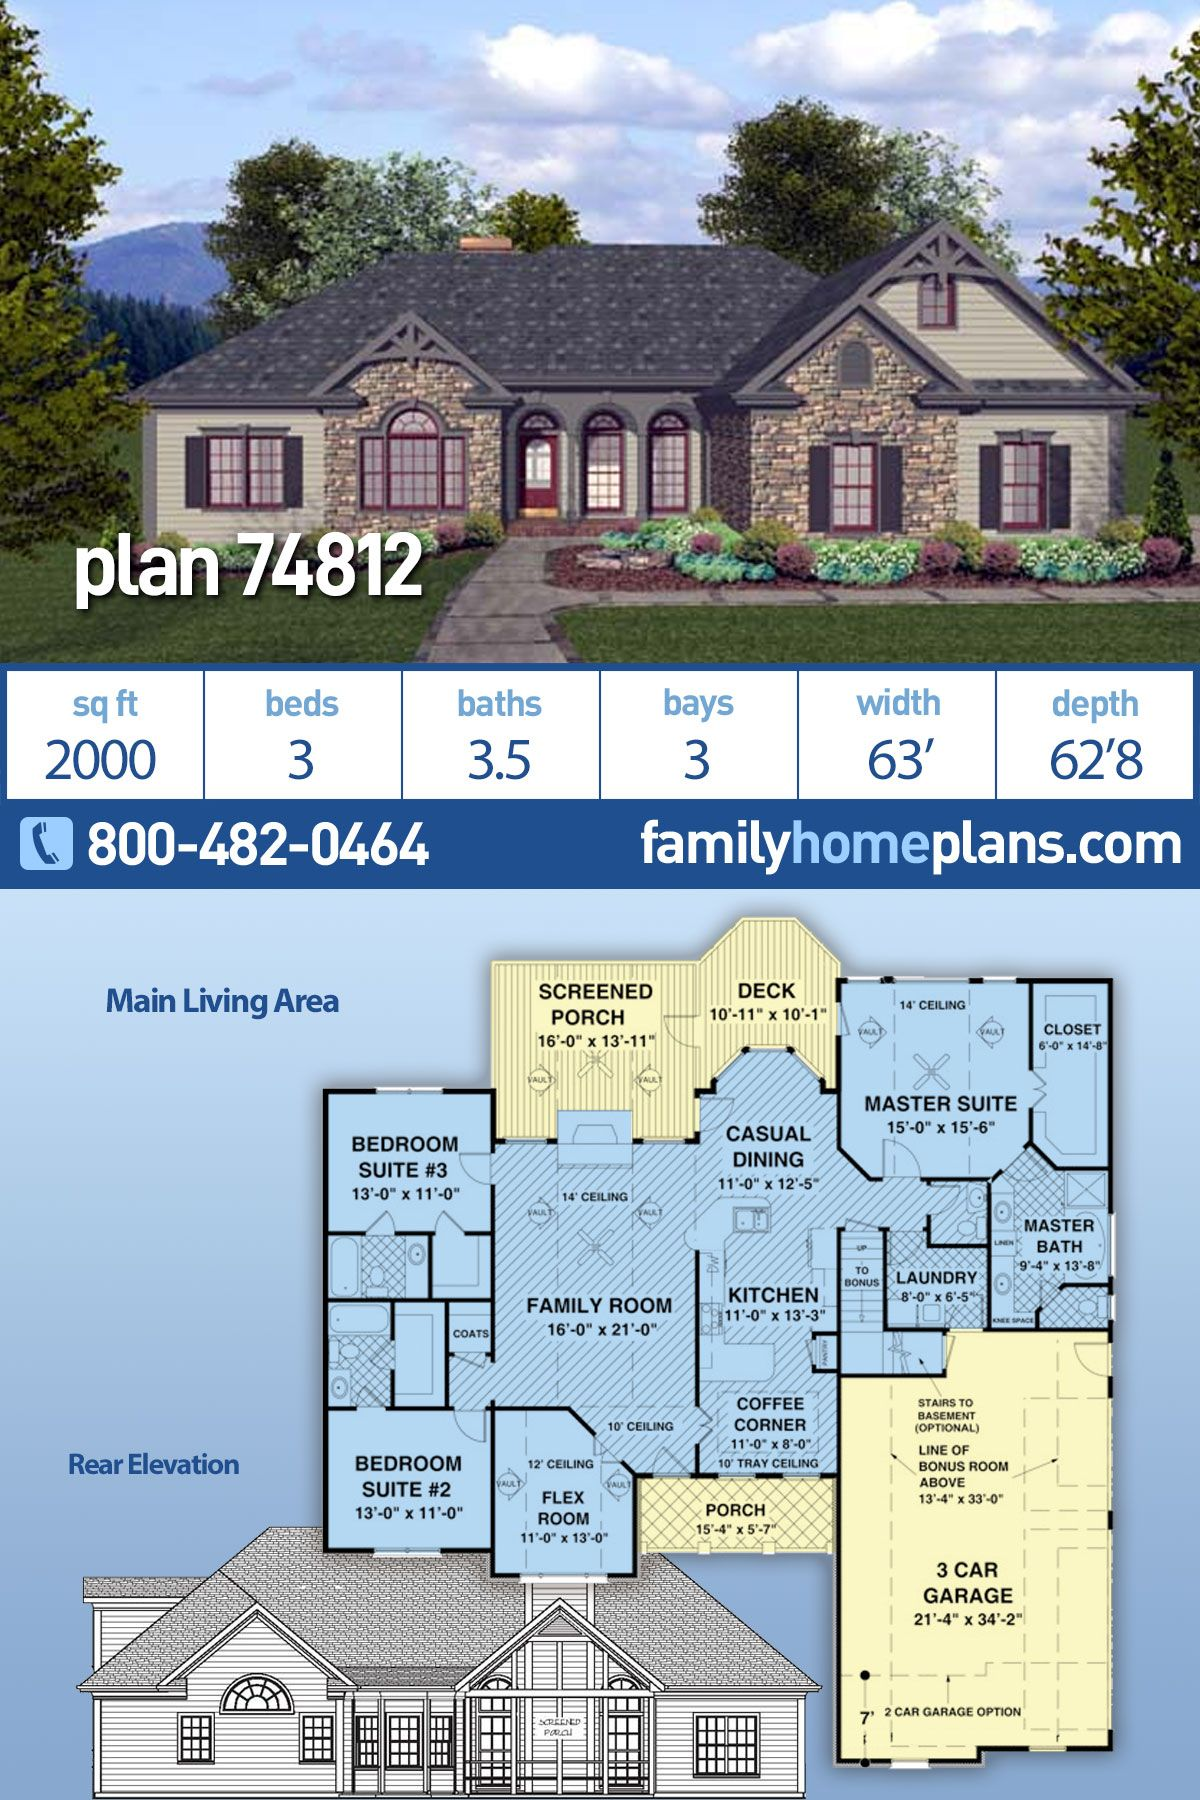 Ranch Style House Plan 74812 With 3 Bed 4 Bath 3 Car Garage Ranch Style House Plans Craftsman House Plans Ranch House Floor Plans